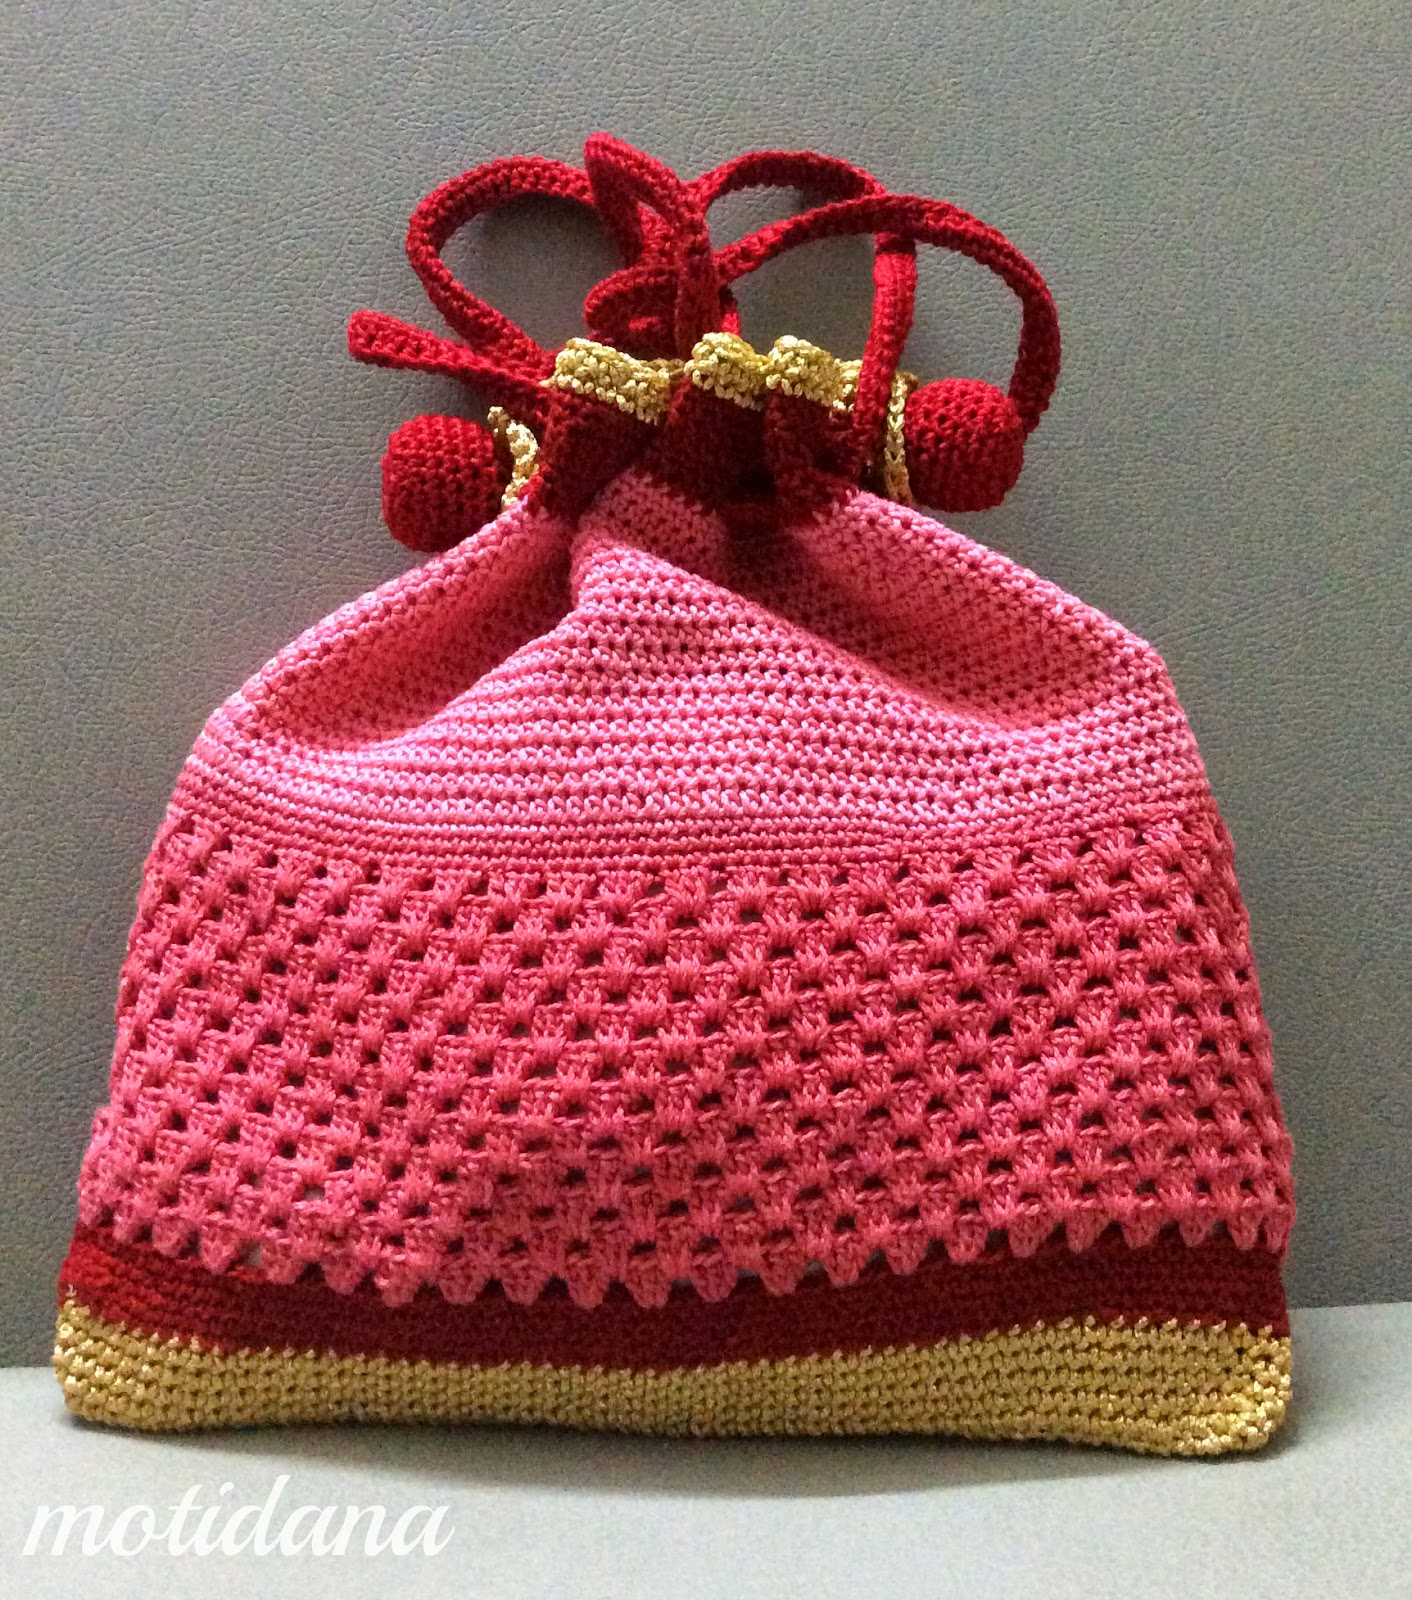 a purse in crochet